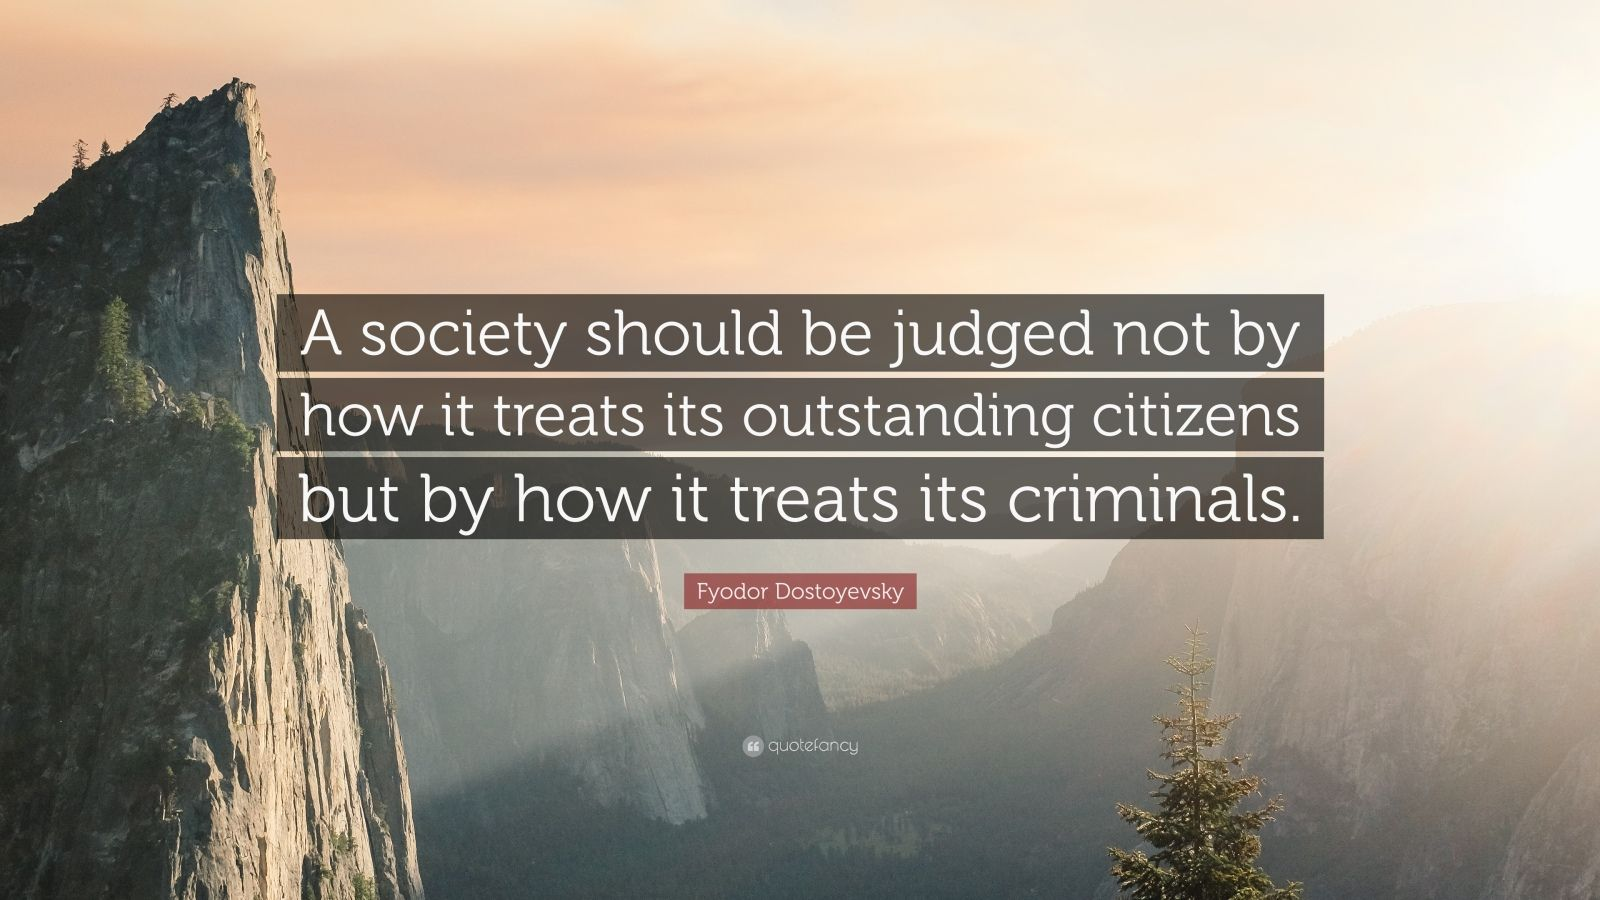 """Fyodor Dostoyevsky Quote: """"A society should be judged not by how it treats its outstanding citizens but by how it treats its criminals."""""""